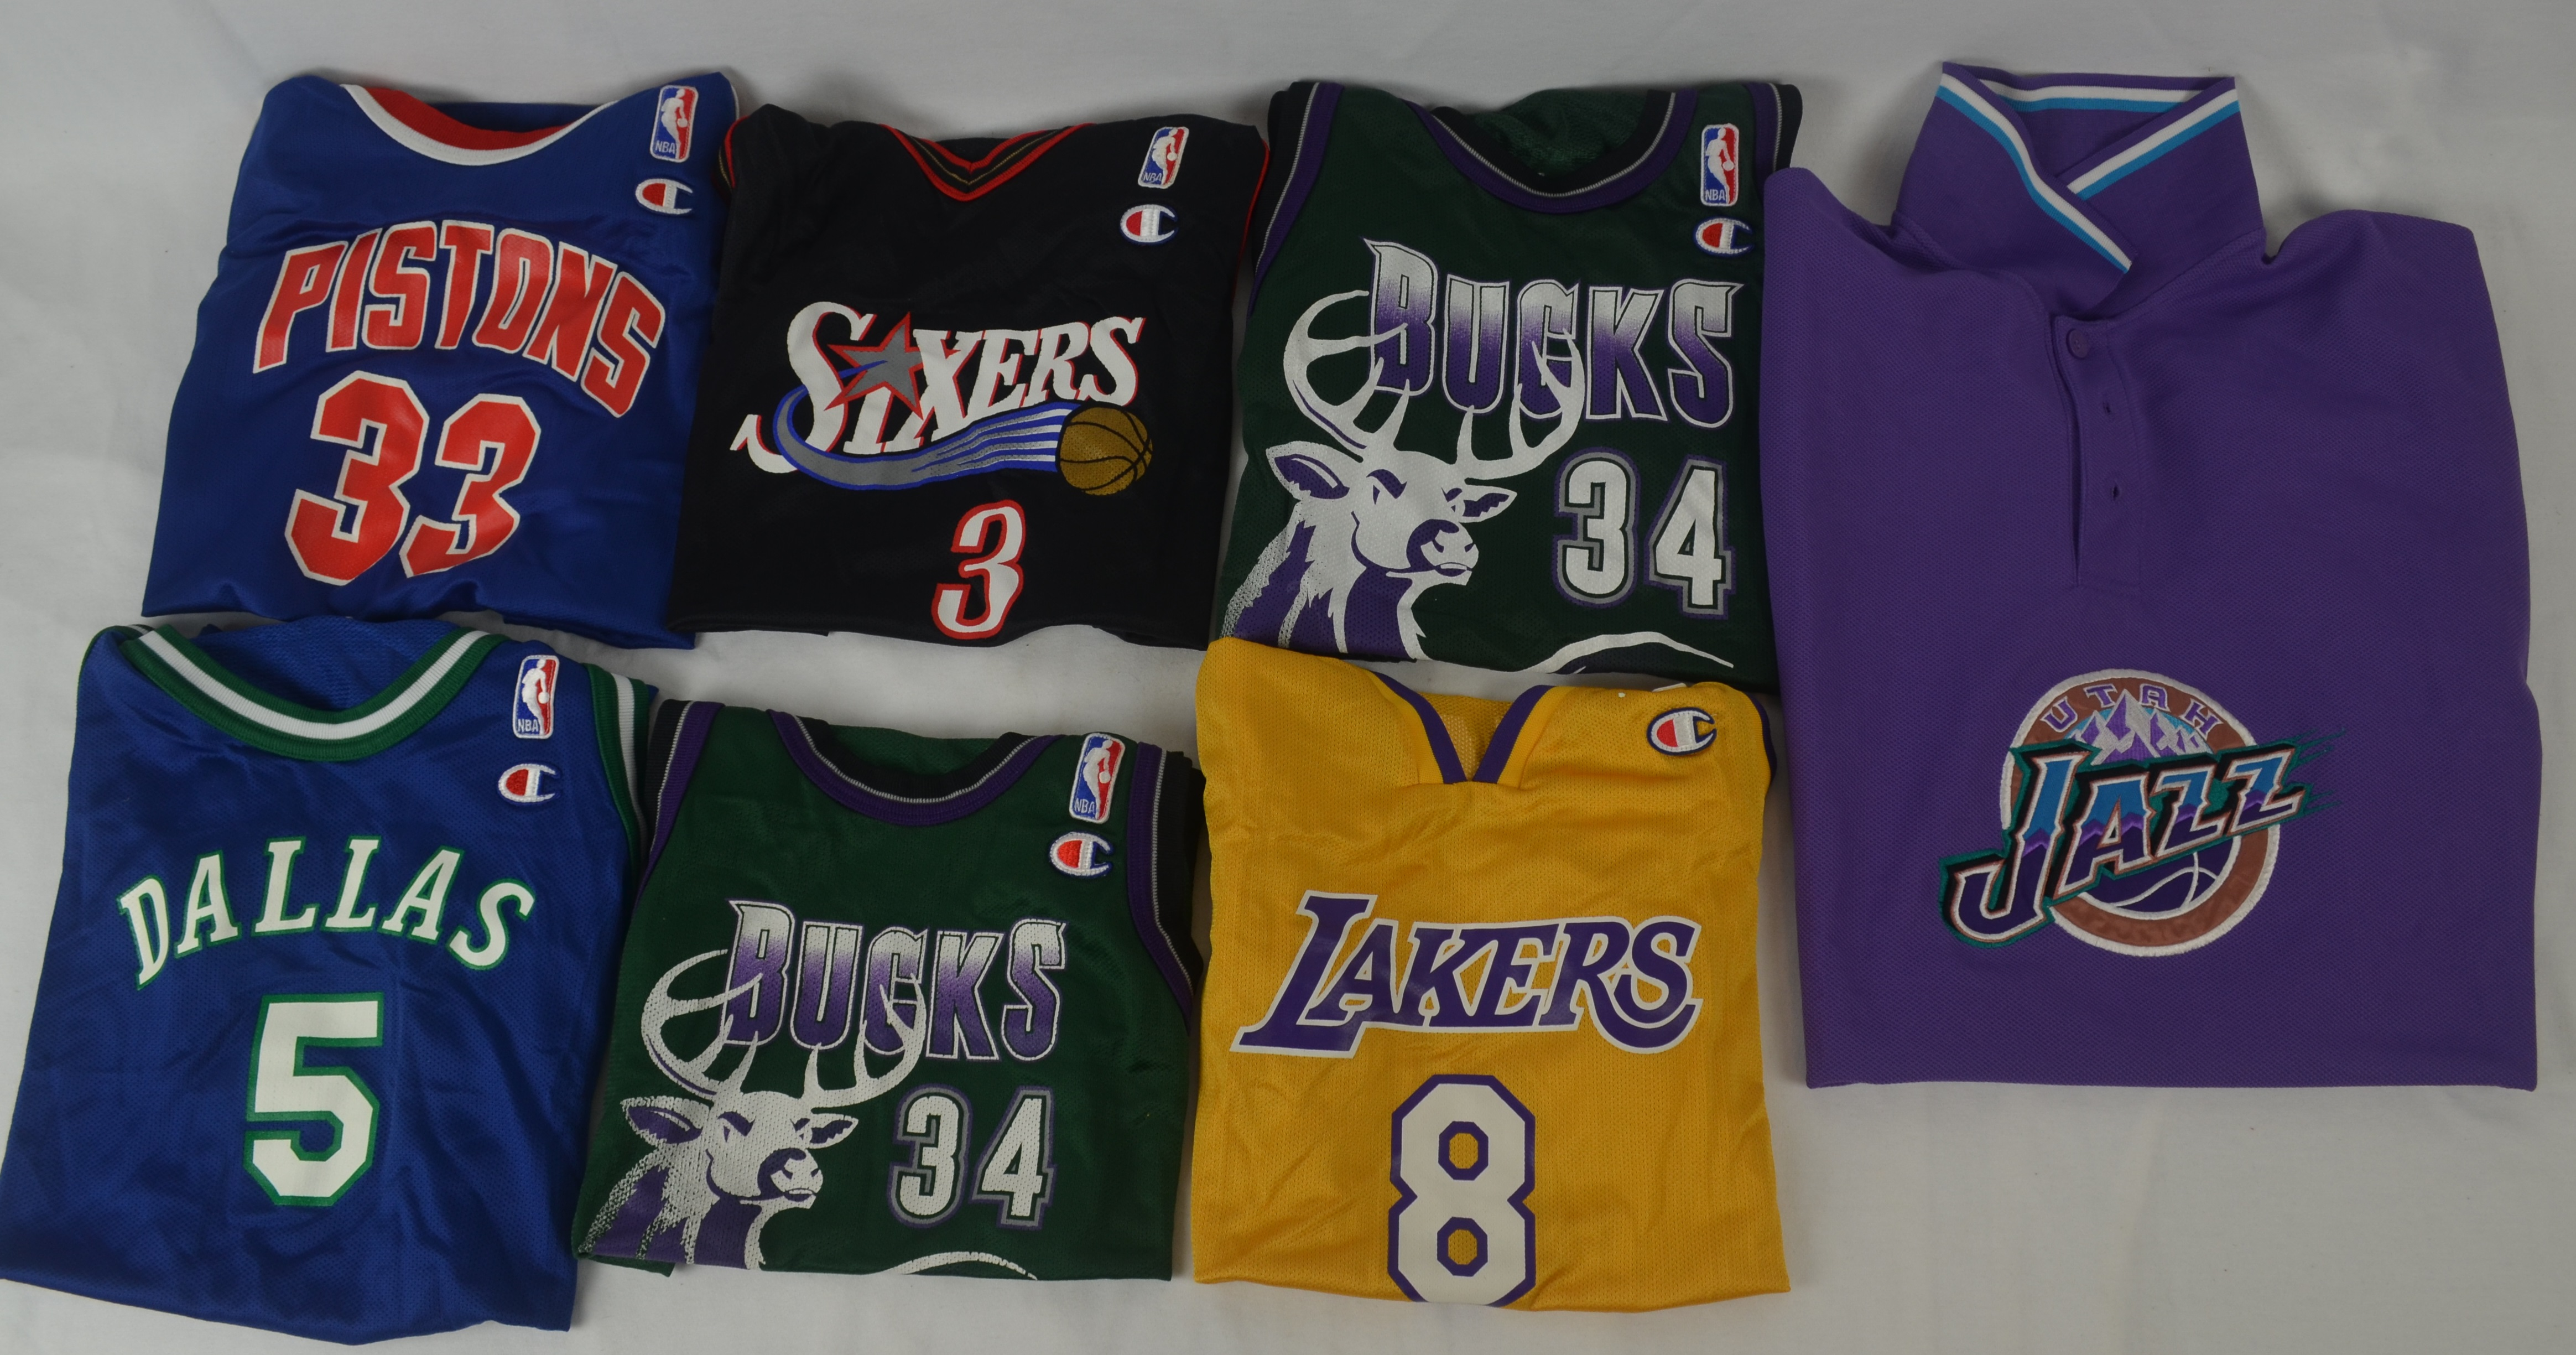 098374d5f Awesome NBA Football Kit Collection Released - Footy Headlines